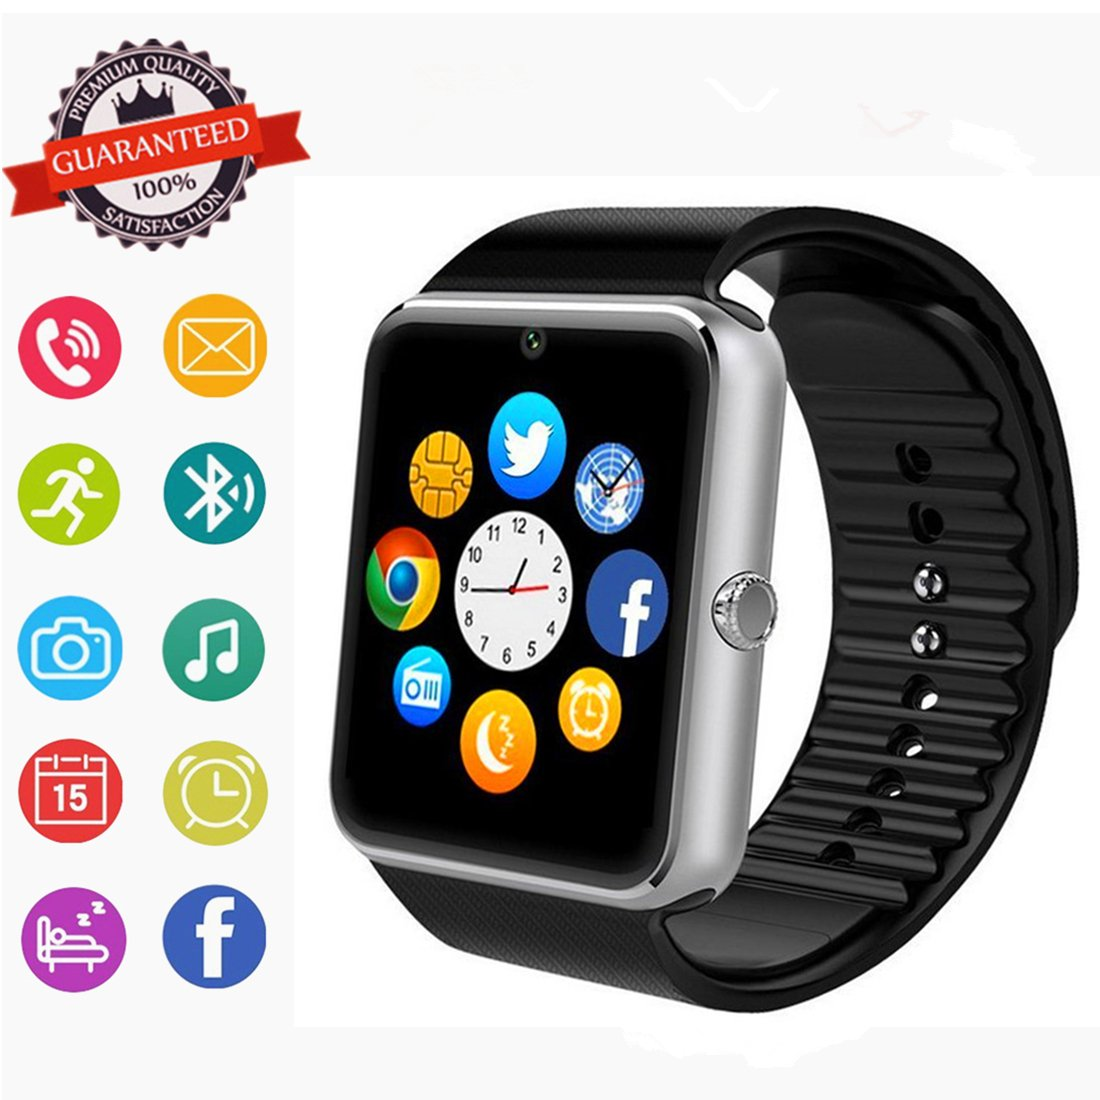 Bluetooth Smart Watch Phone with SIM Card Slot/Camera/Pedometer for Android HTC Sony Samsung LG Google Pixel /Pixel and iOS iPhone Sweatproof…